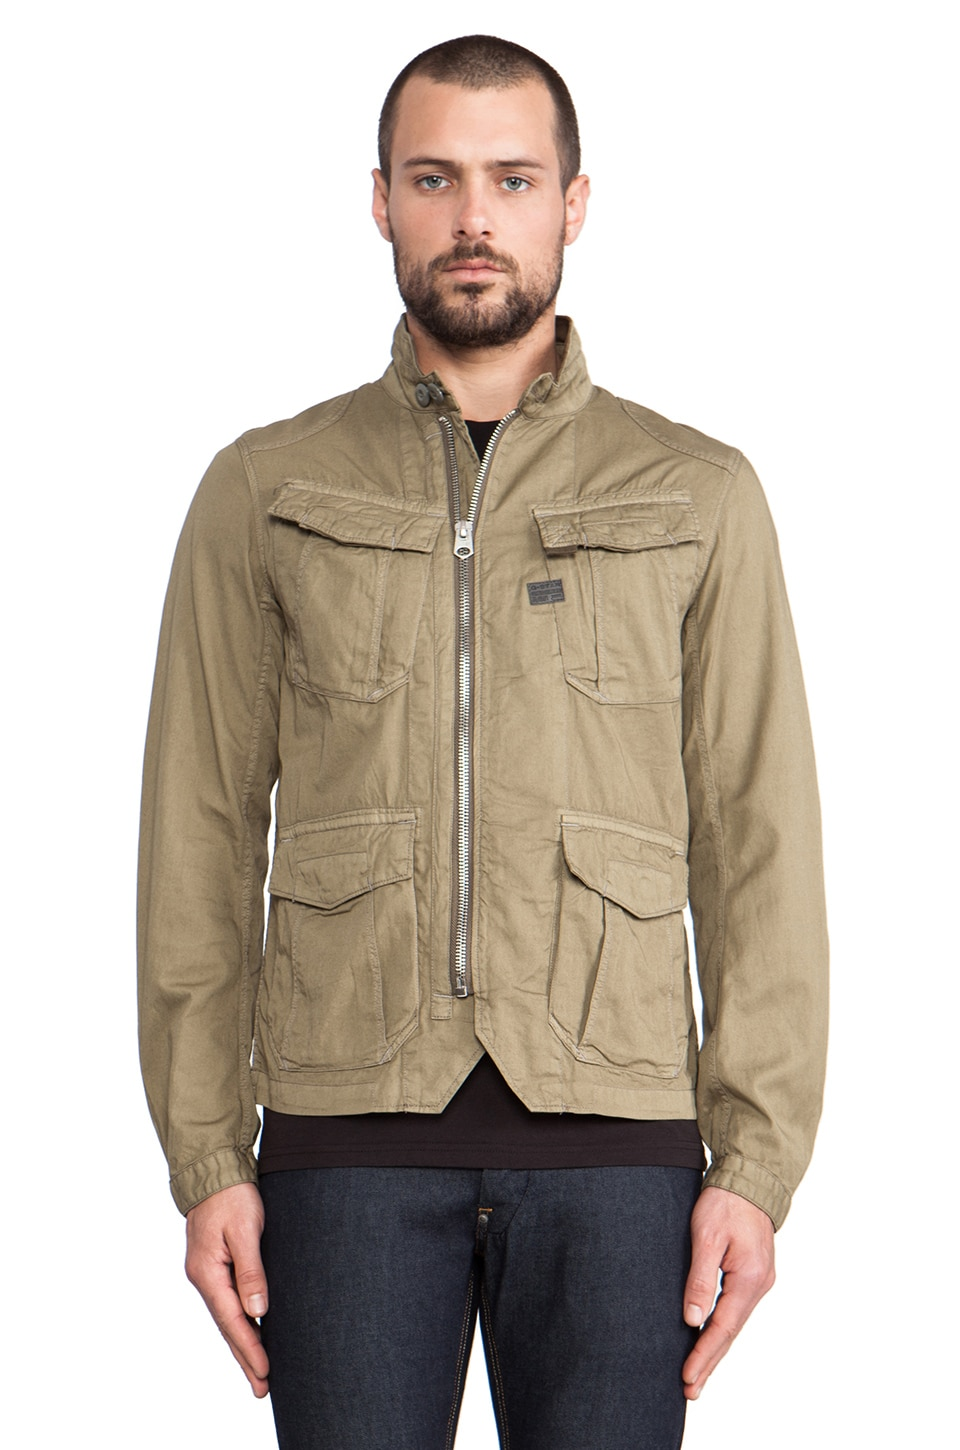 G-Star Anson Premium Overshirt in Army Green